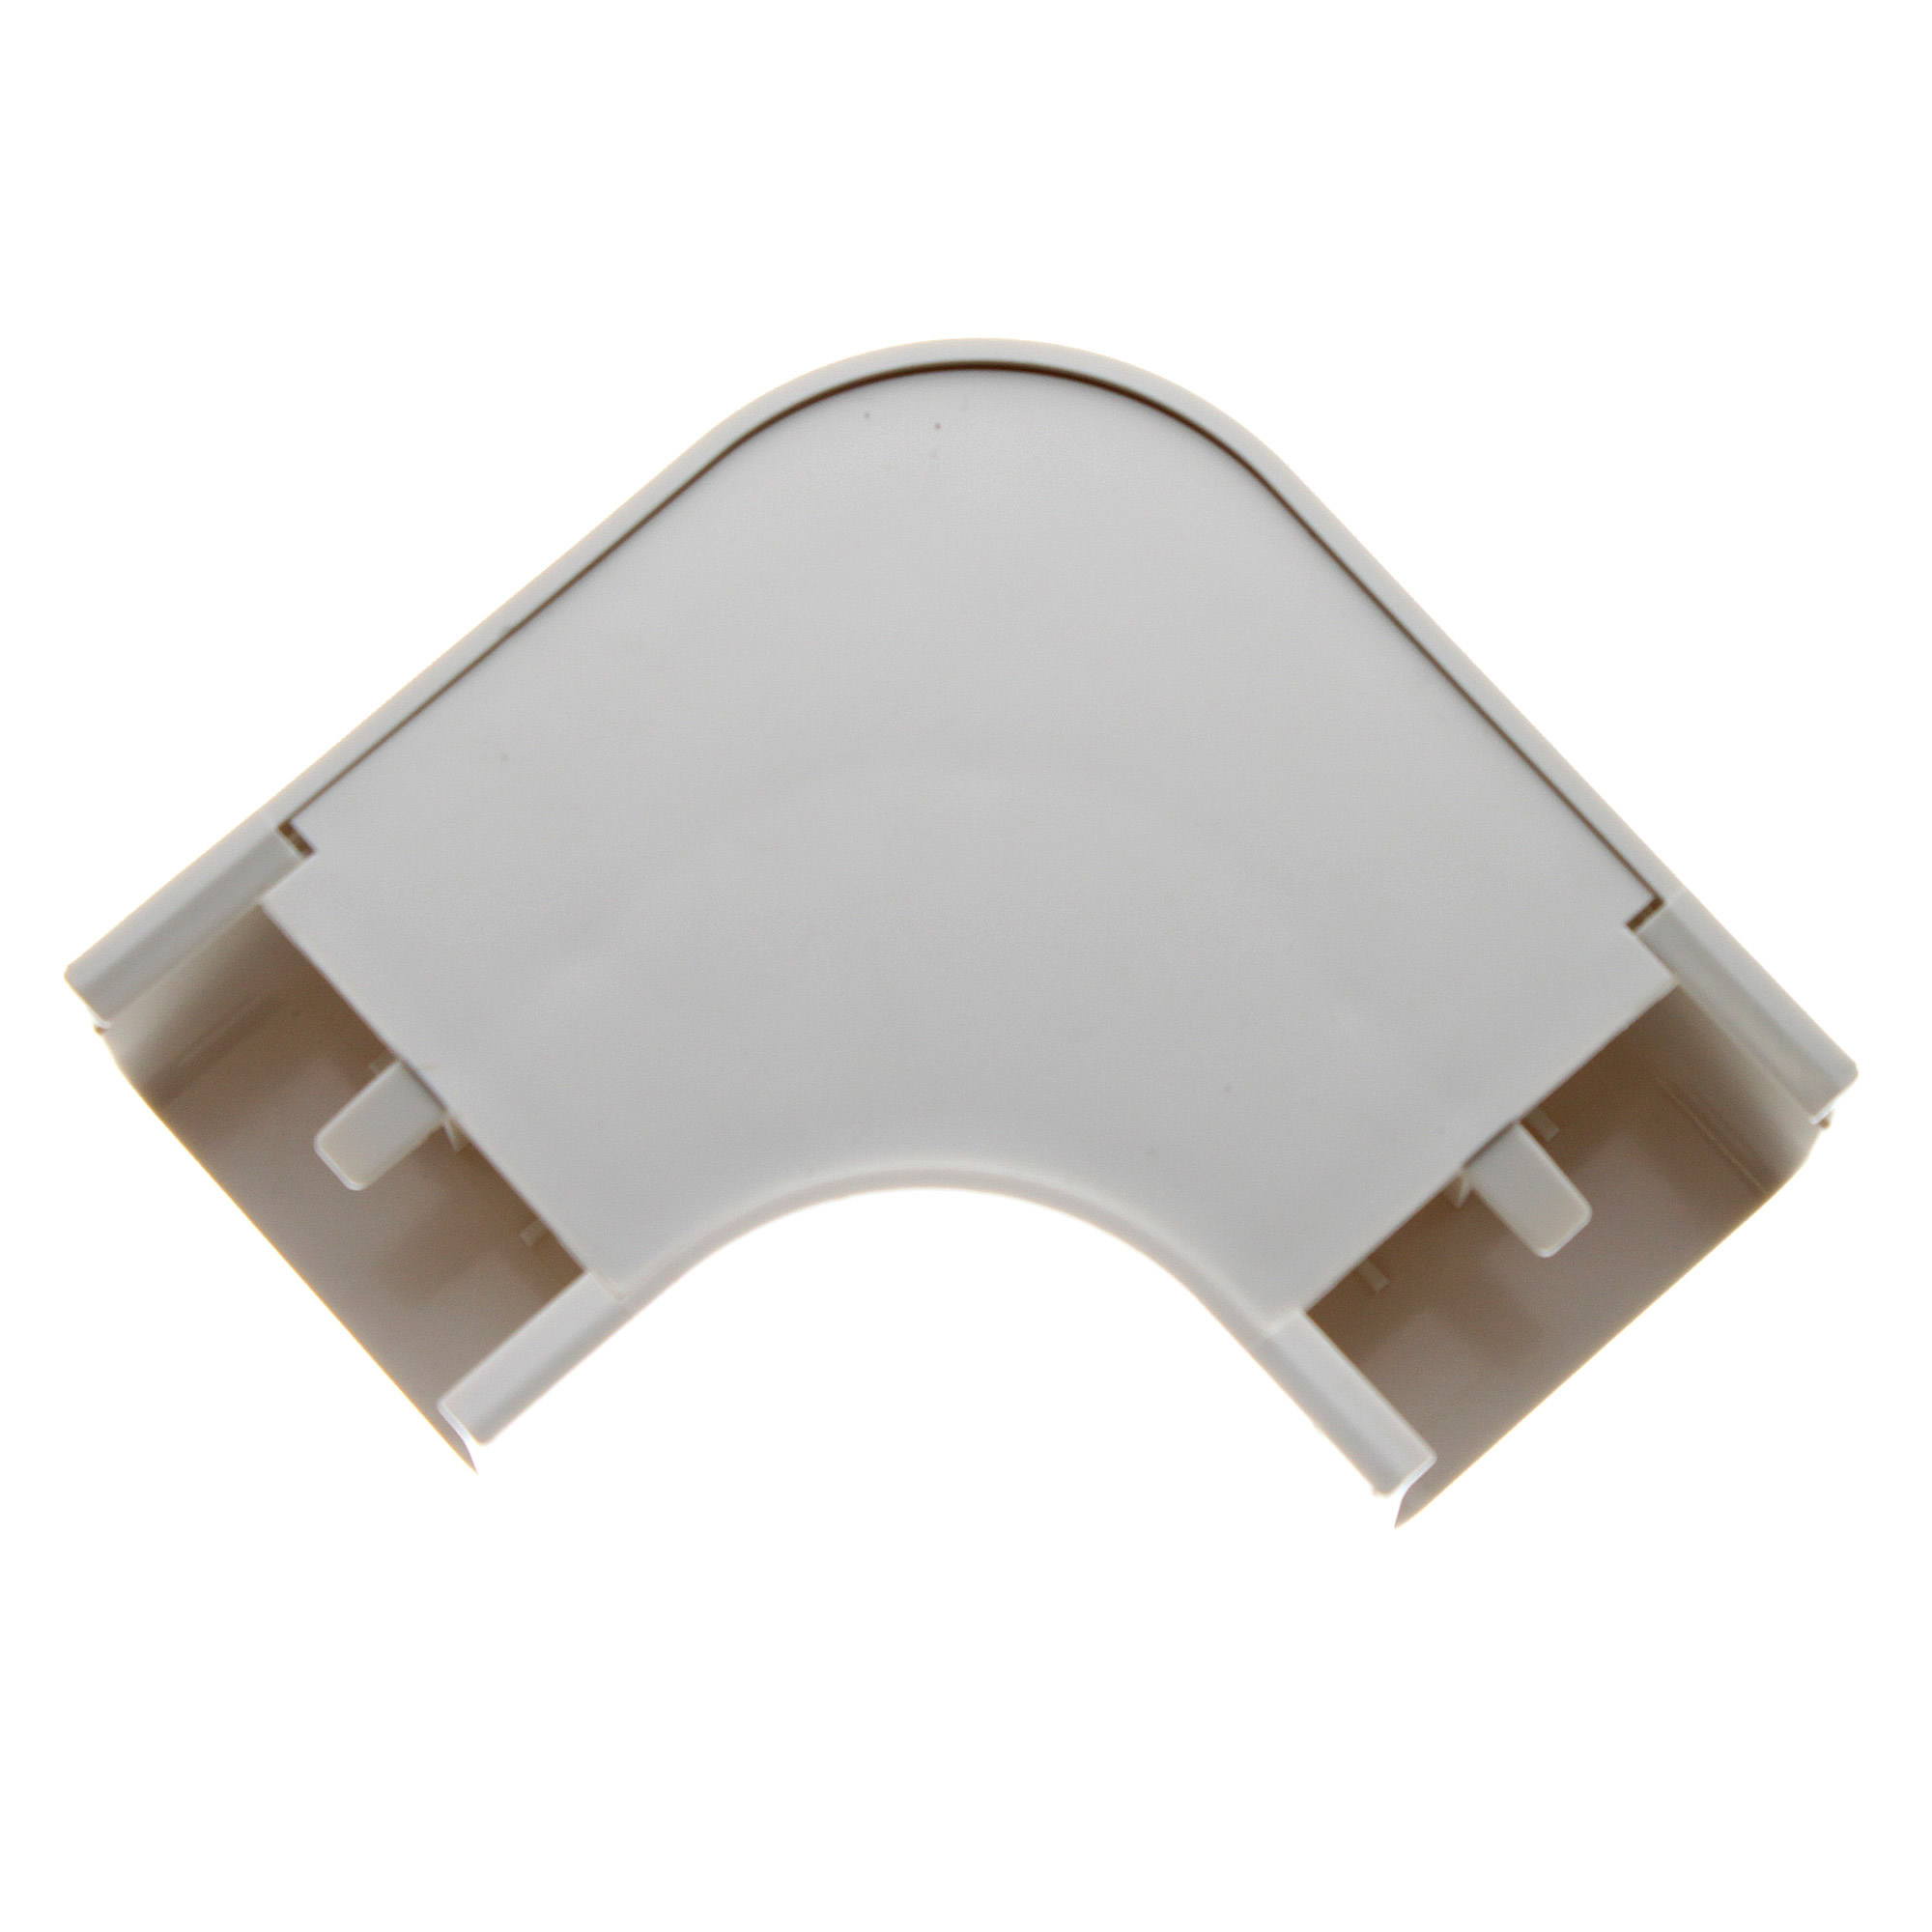 Right Angle Base : Panduit rafx iw pan way power rated right angle fitting